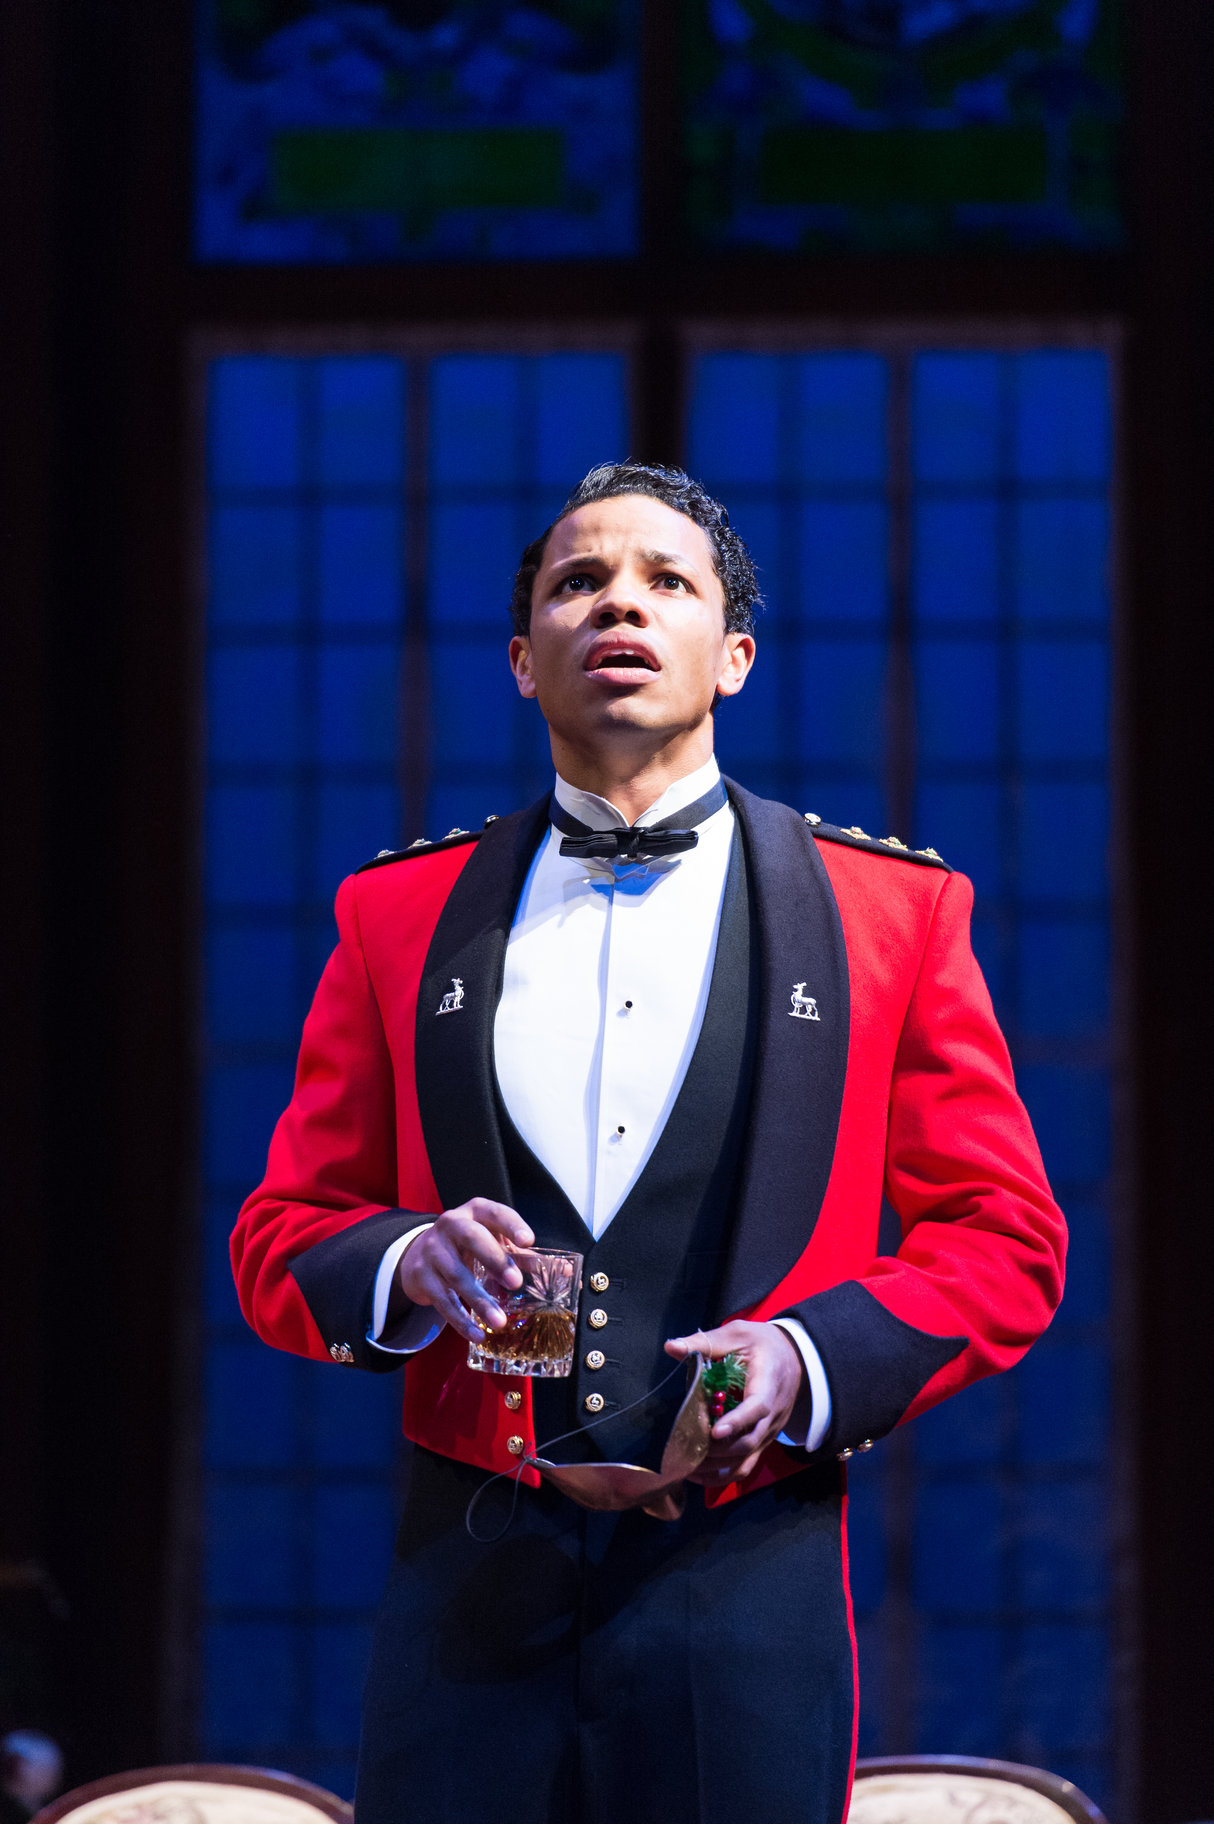 Tunji Kasim as Claudio in a red soldier's jacket.